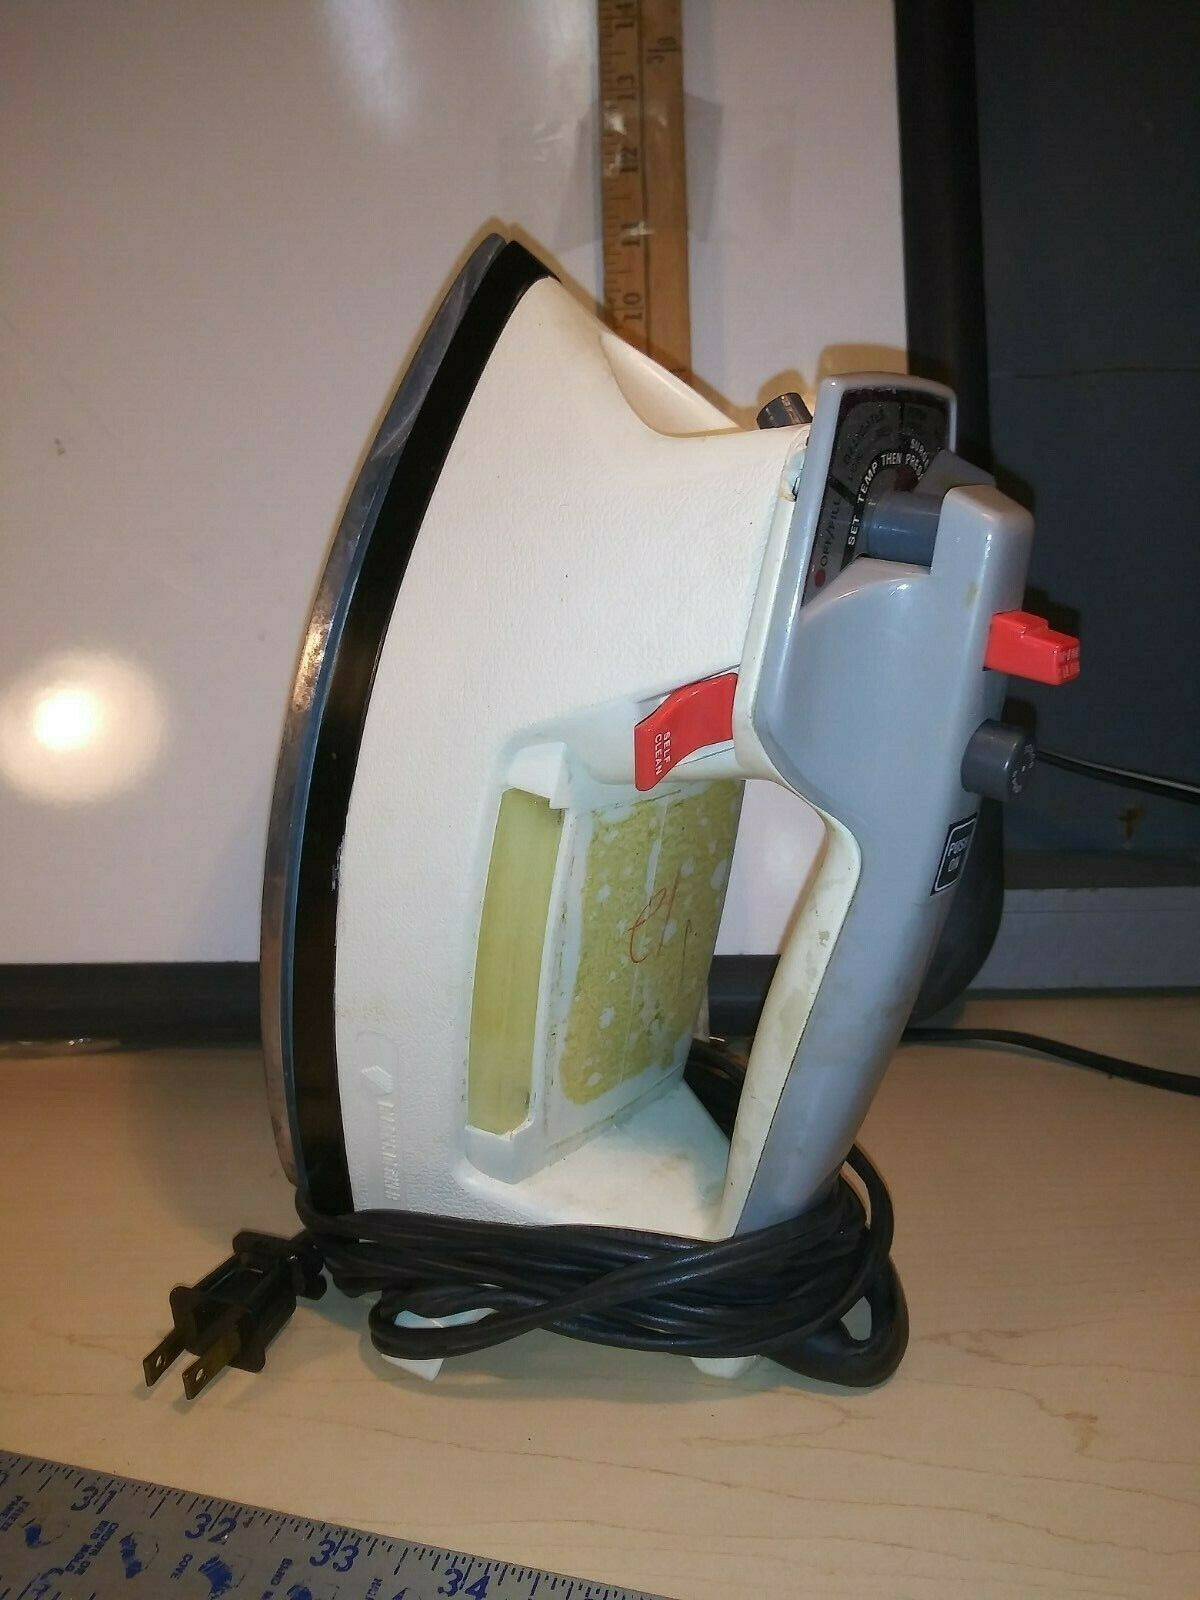 Black & Decker Wrap and Rest IRON model S7F438WH - $10.00